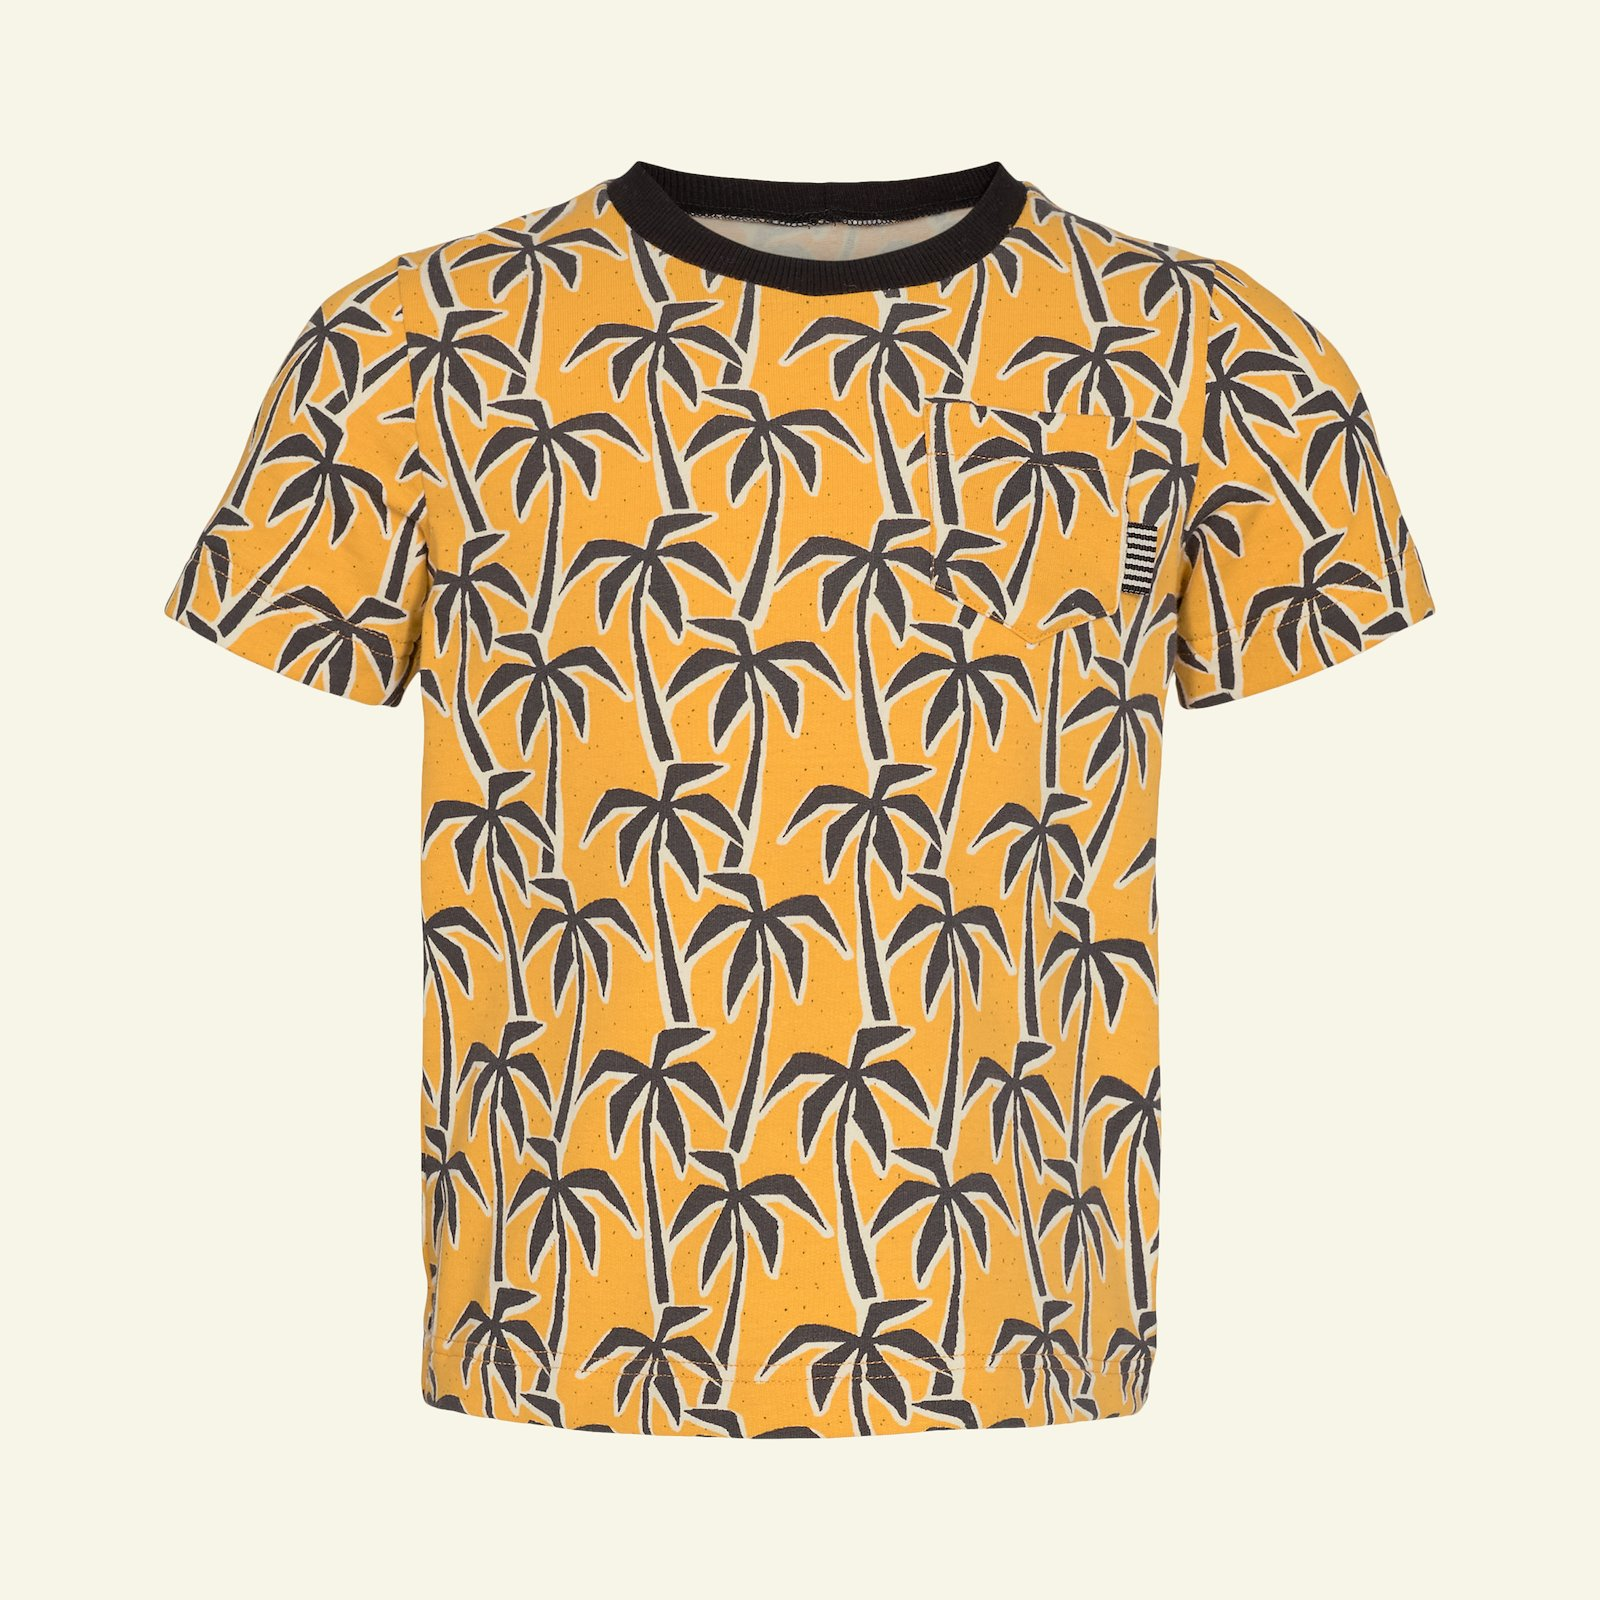 T-shirt with long and short, 152/12y p62017_211786_272436_sskit